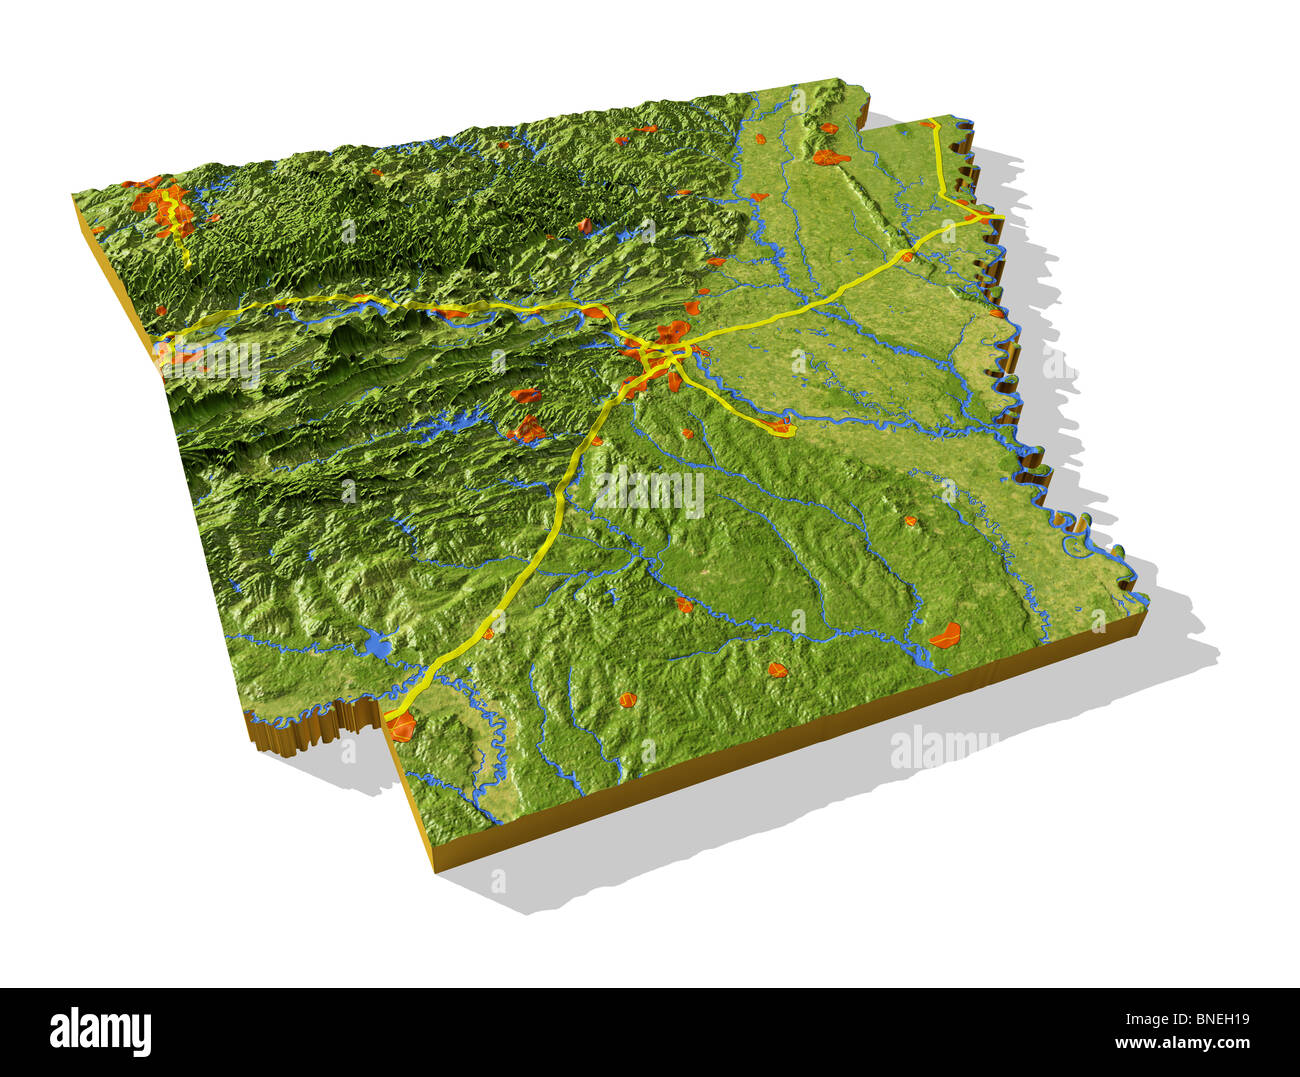 Arkansas D Relief Map Cutout With Urban Areas And Interstate - Arkansas relief map